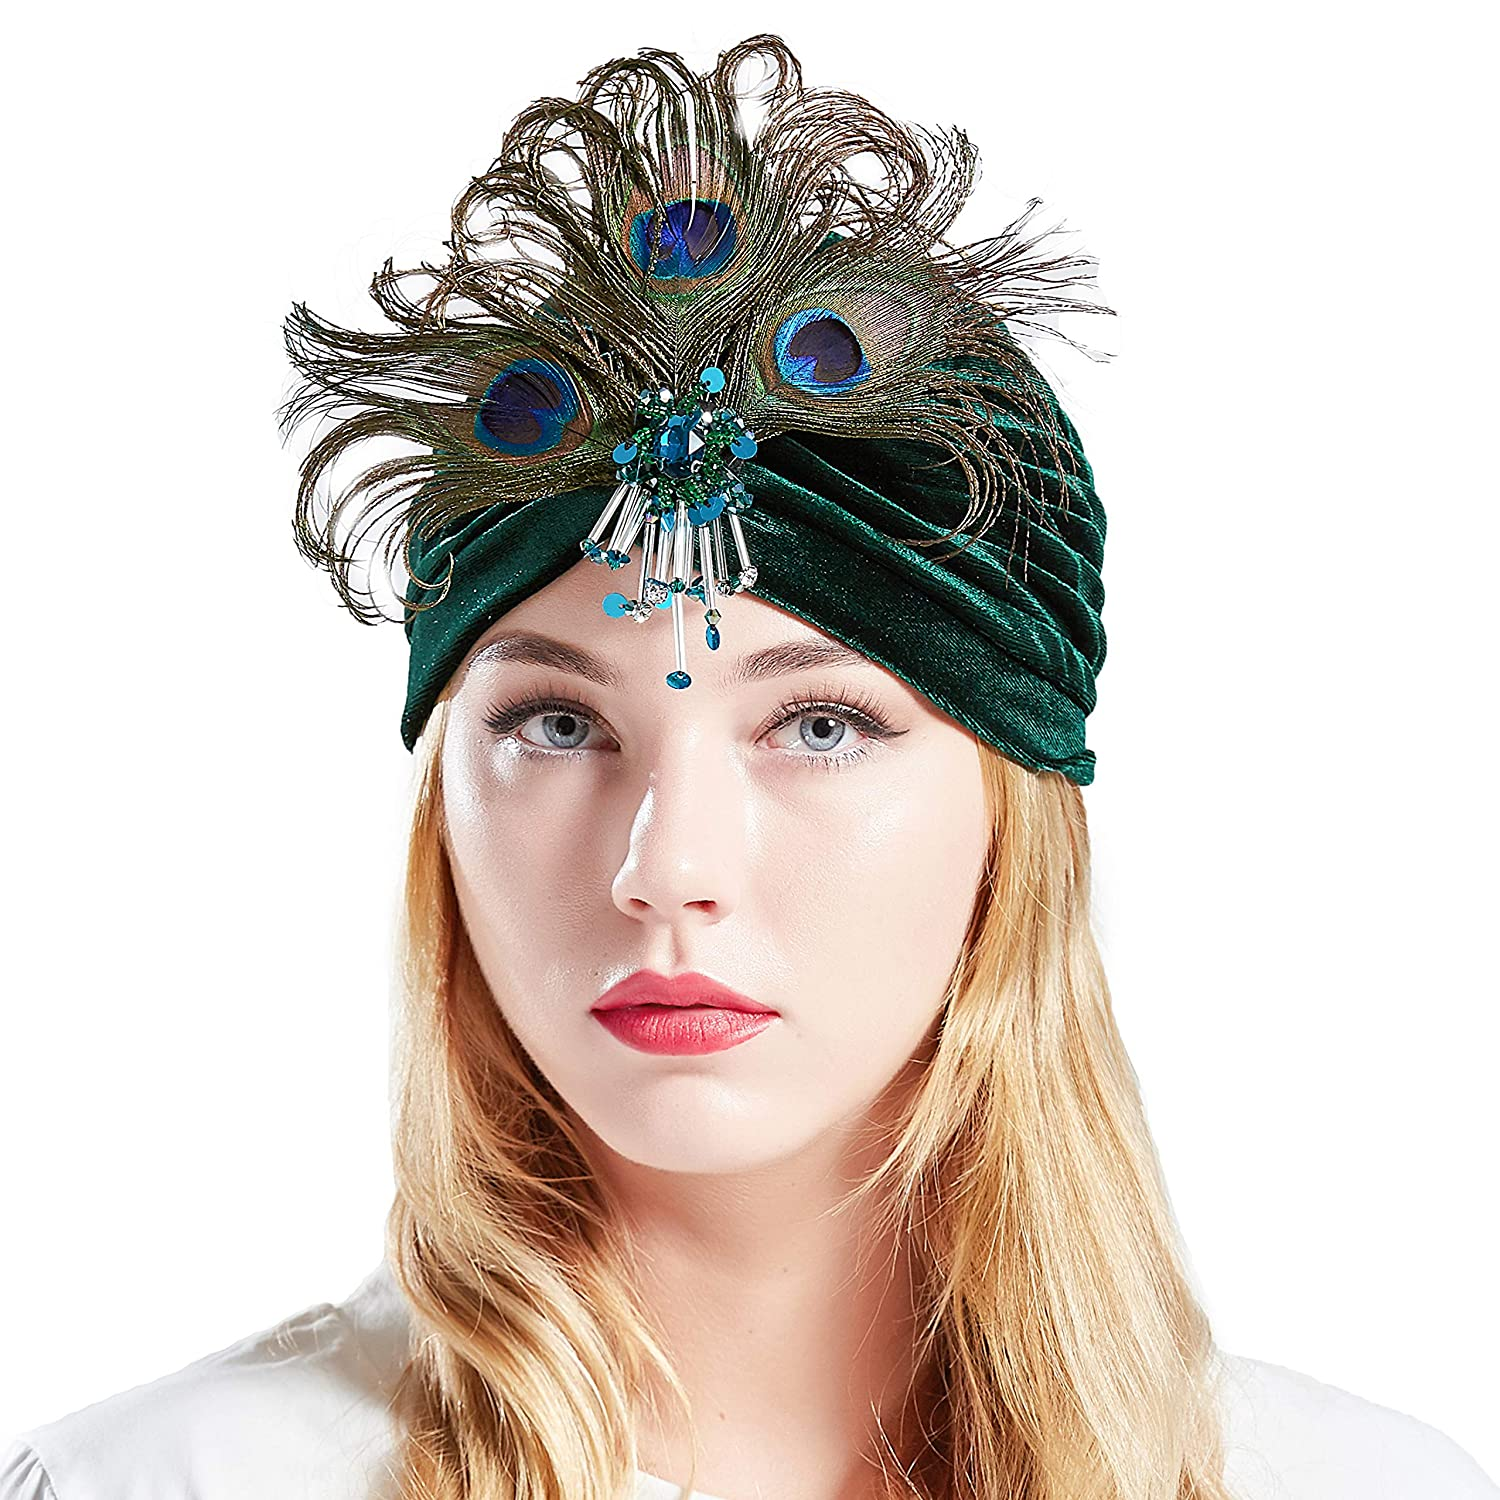 1920s Fashion & Clothing | Roaring 20s Attire BABEYOND Gatsby Turban Hat Vintage 1920s Head Wrap Knit Pleated Turban 20s Cap $15.99 AT vintagedancer.com